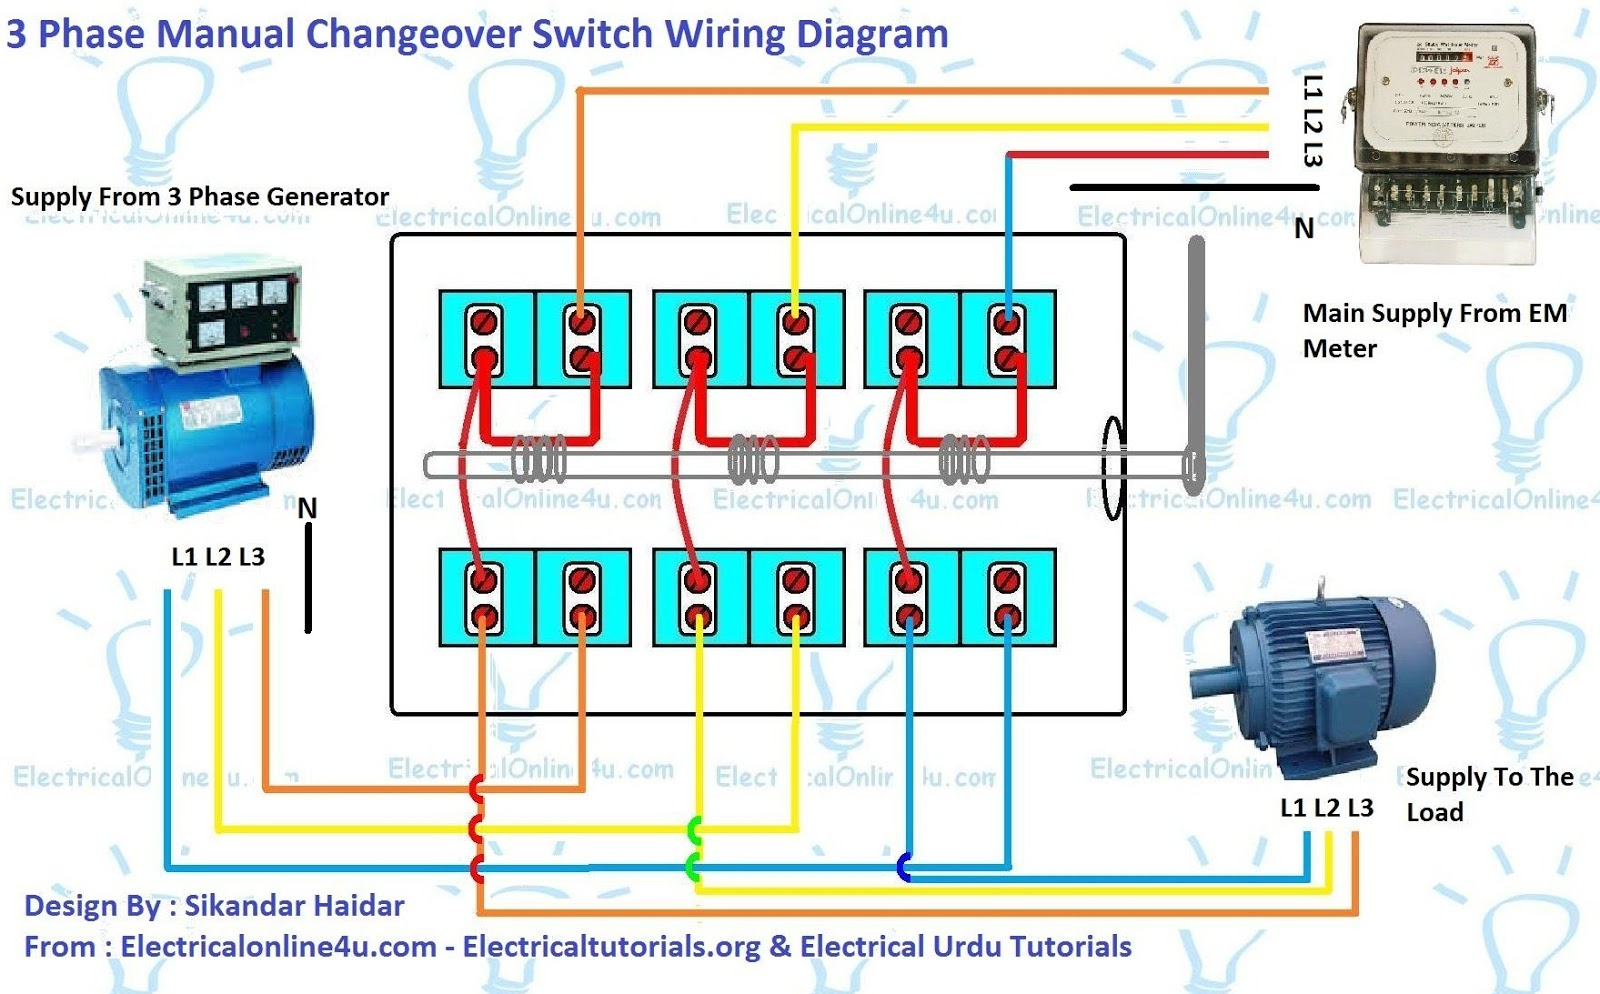 3%2Bphase%2Bmanual%2Bchangeover%2Bswitch%2Bwiring%2Bdiagram 3 phase manual changeover switch wiring diagram for generator single phase generator wiring diagram at letsshop.co